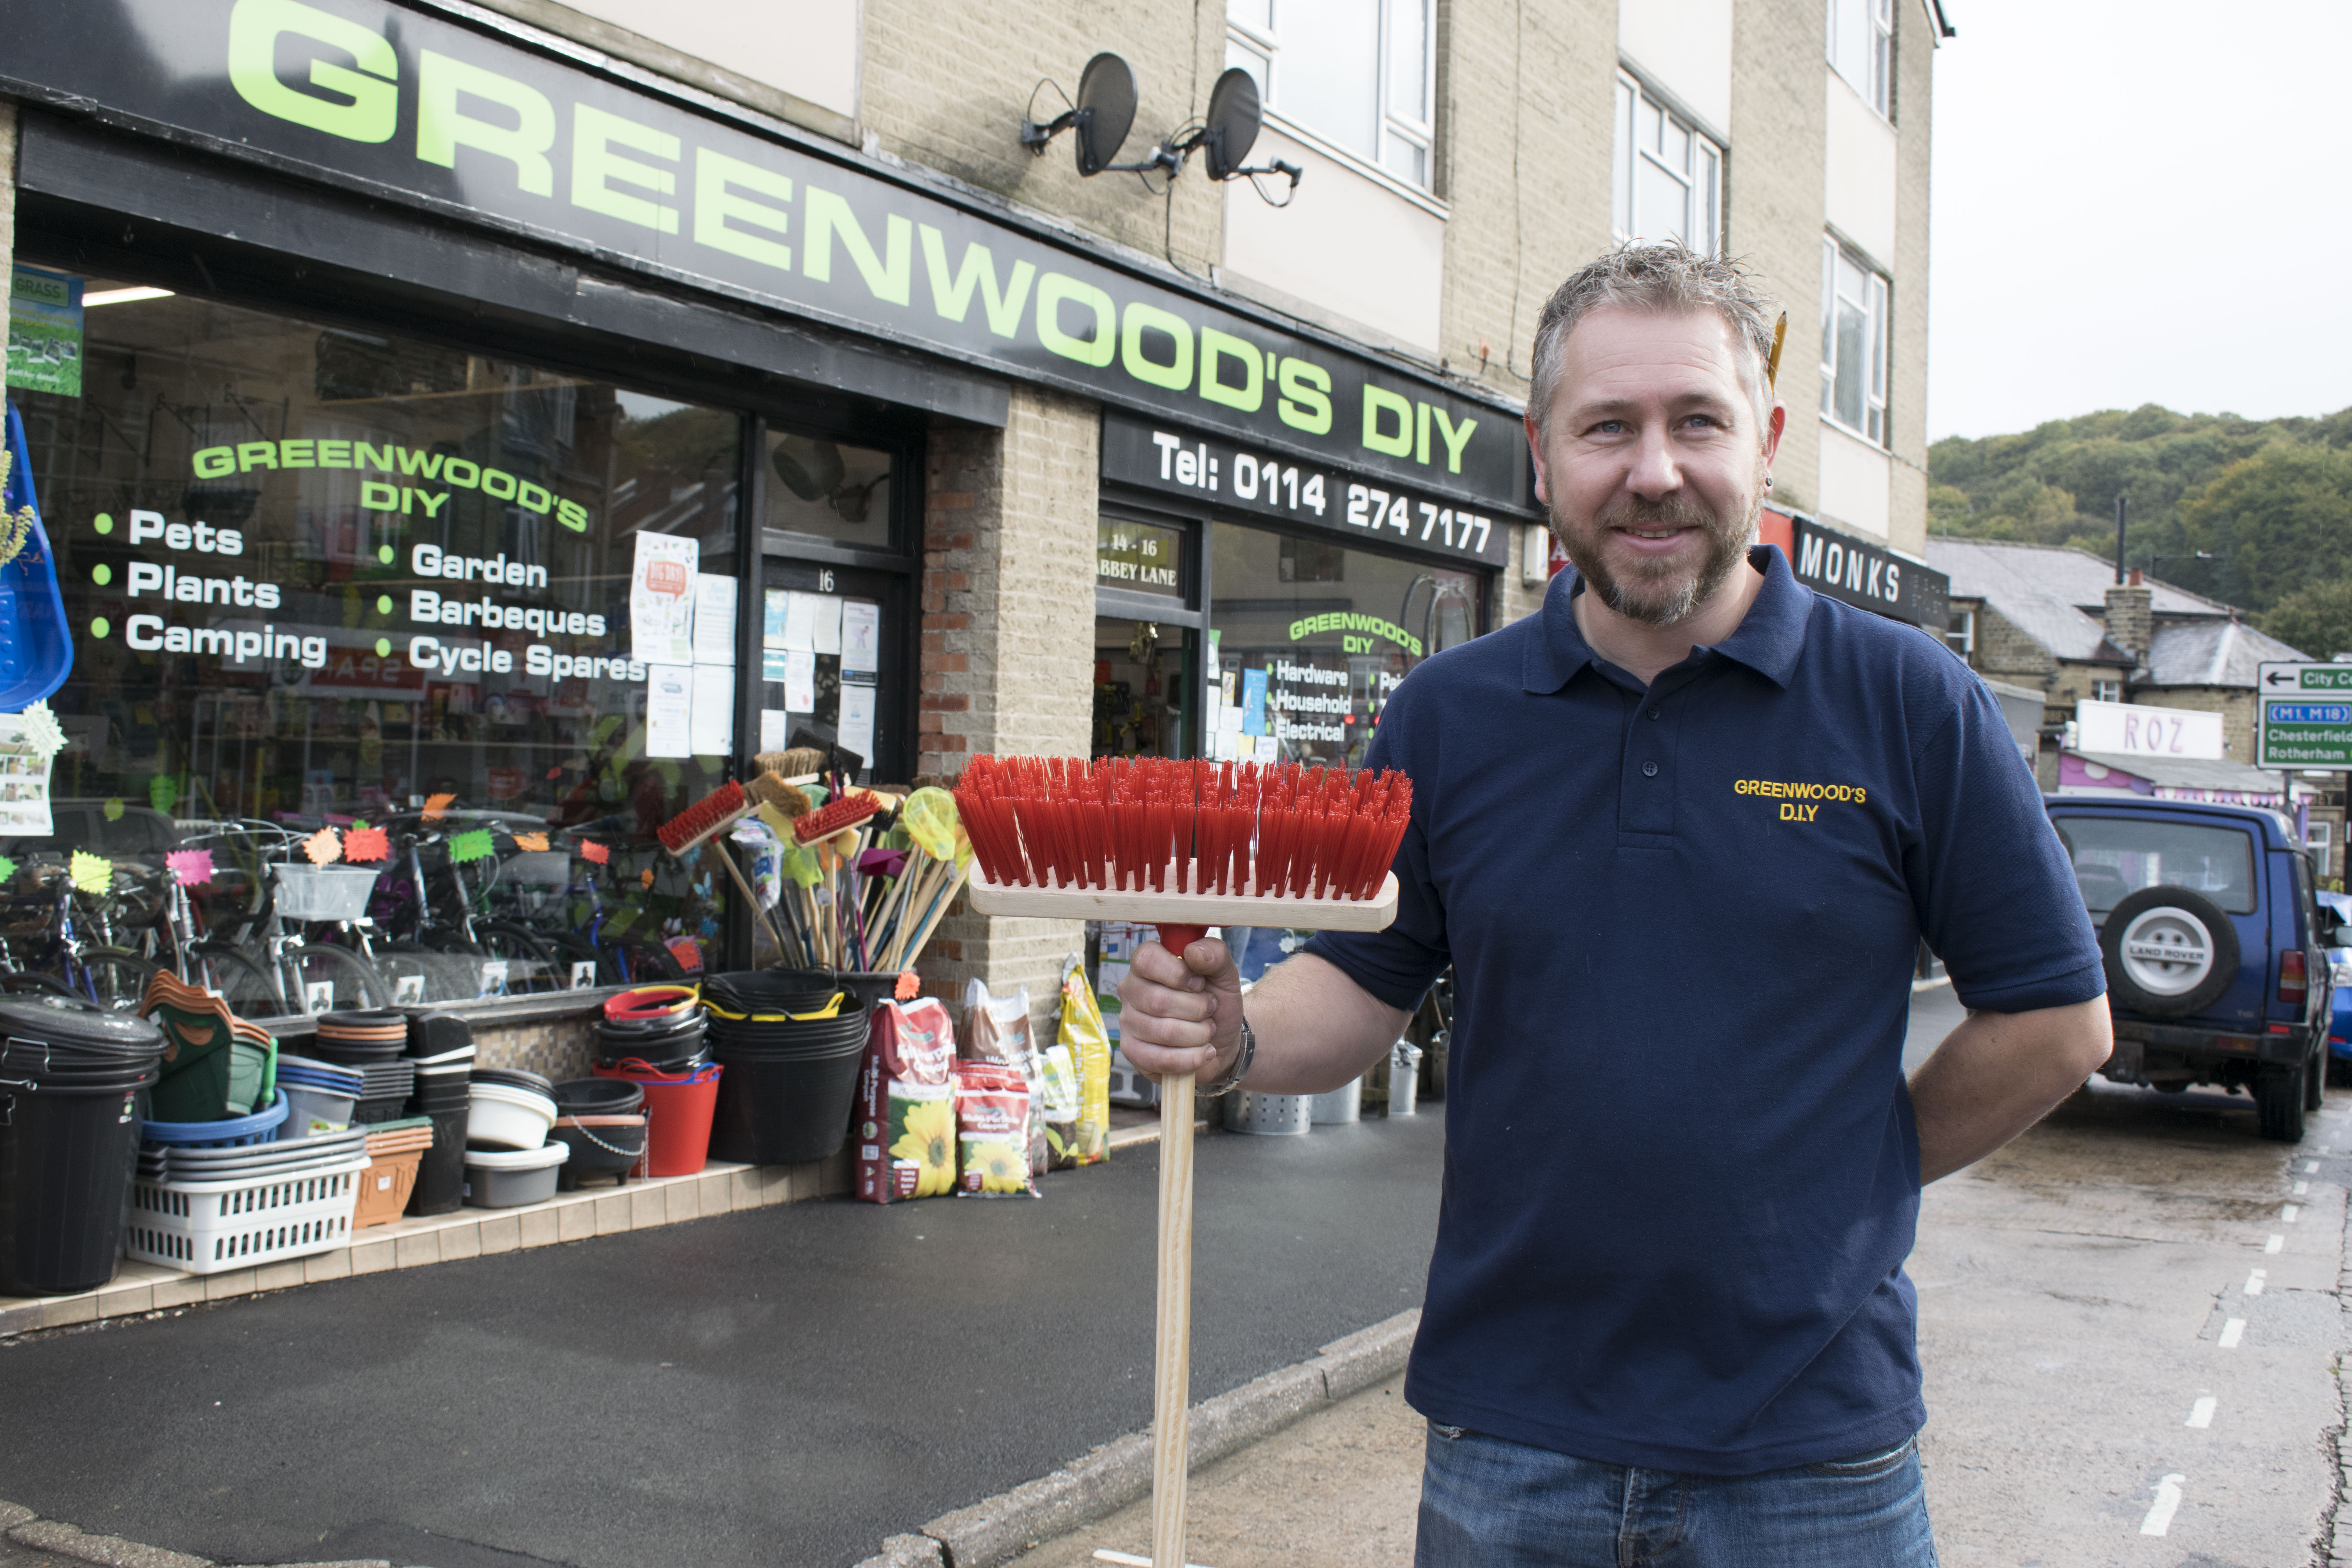 Nic with his broom outside the shop